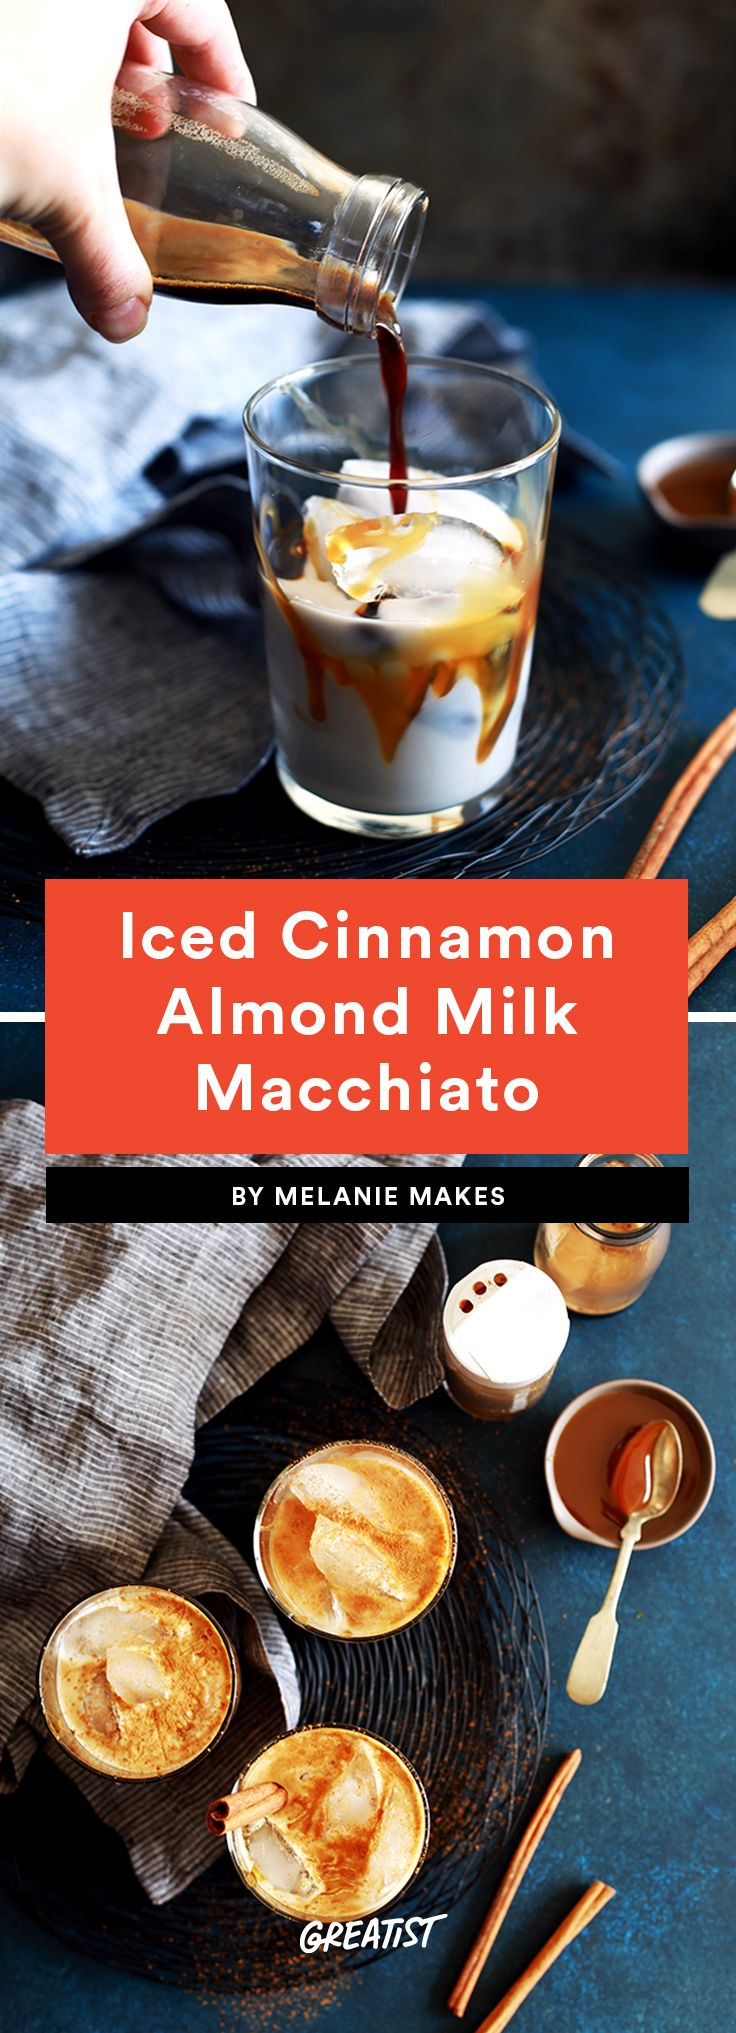 how to make cold foam for coffee with almond milk